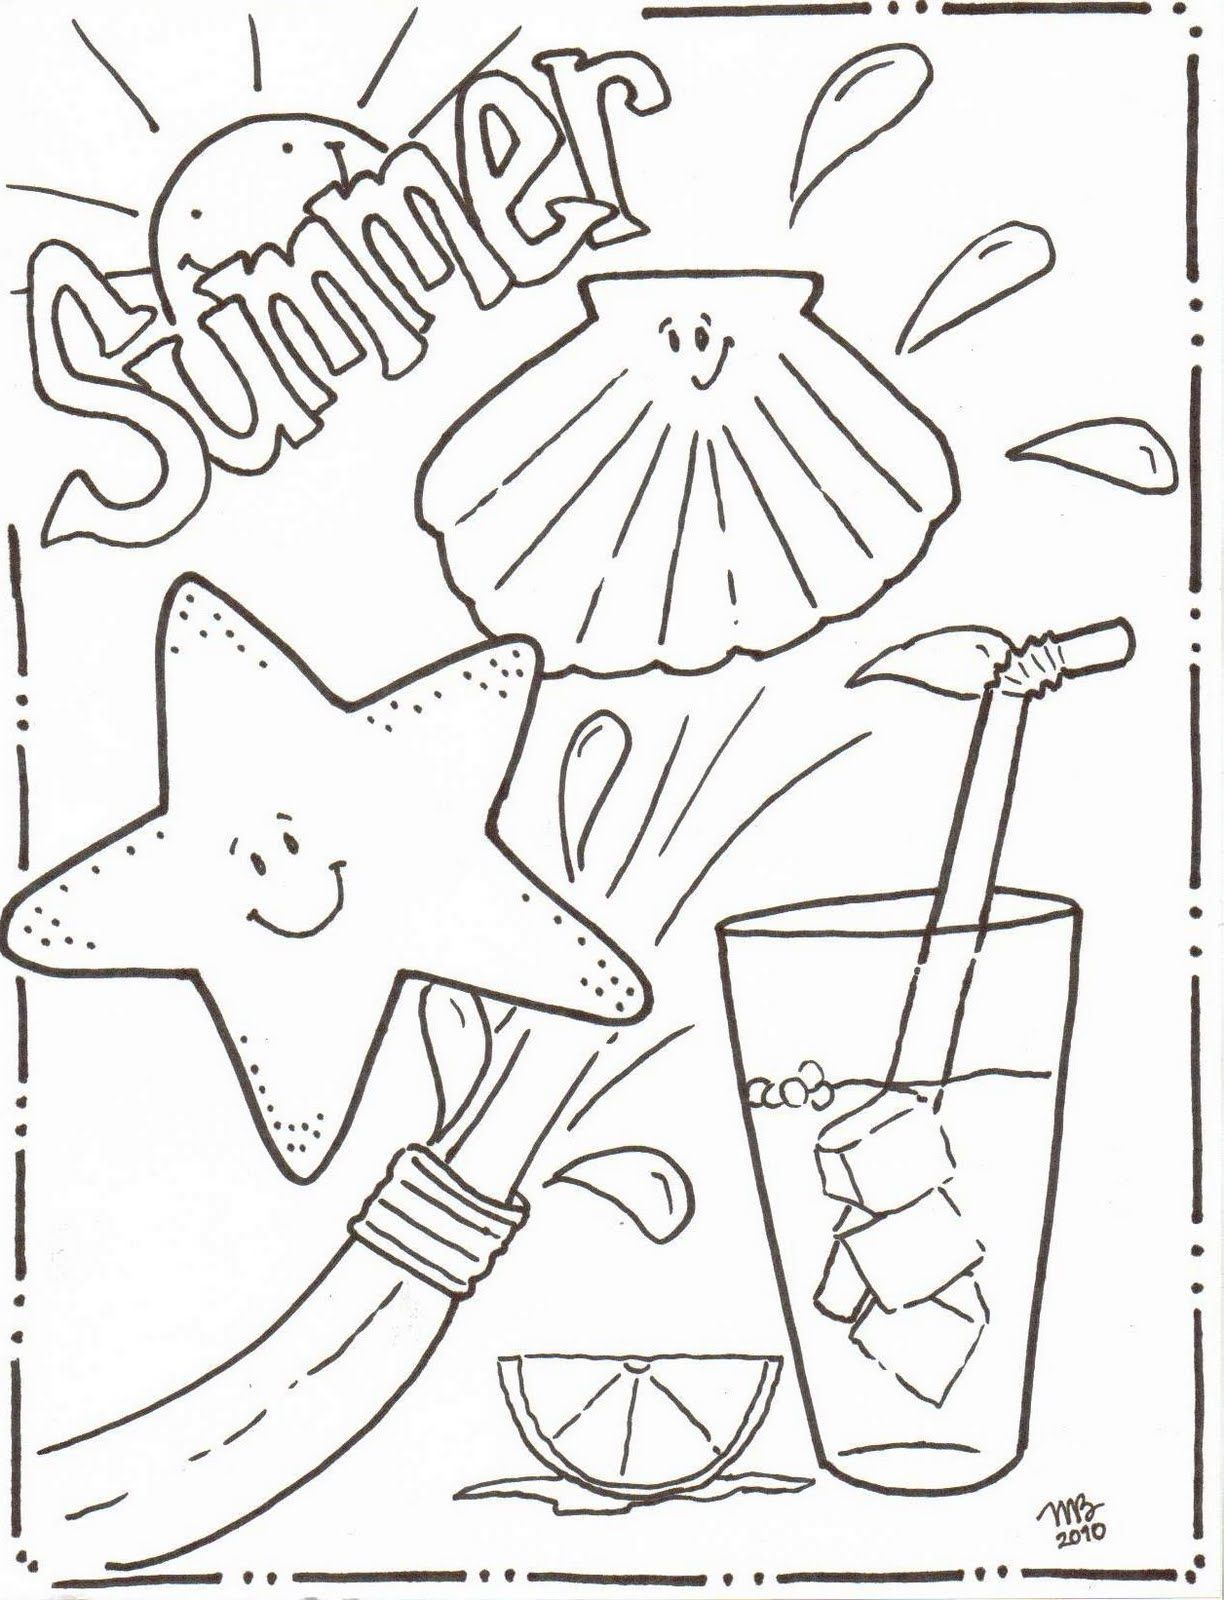 Summertime Coloring Sheets Michelle Kemper Brownlow Summer Coloring Pages Original Mkb Des Cool Coloring Pages Summer Coloring Sheets Beach Coloring Pages